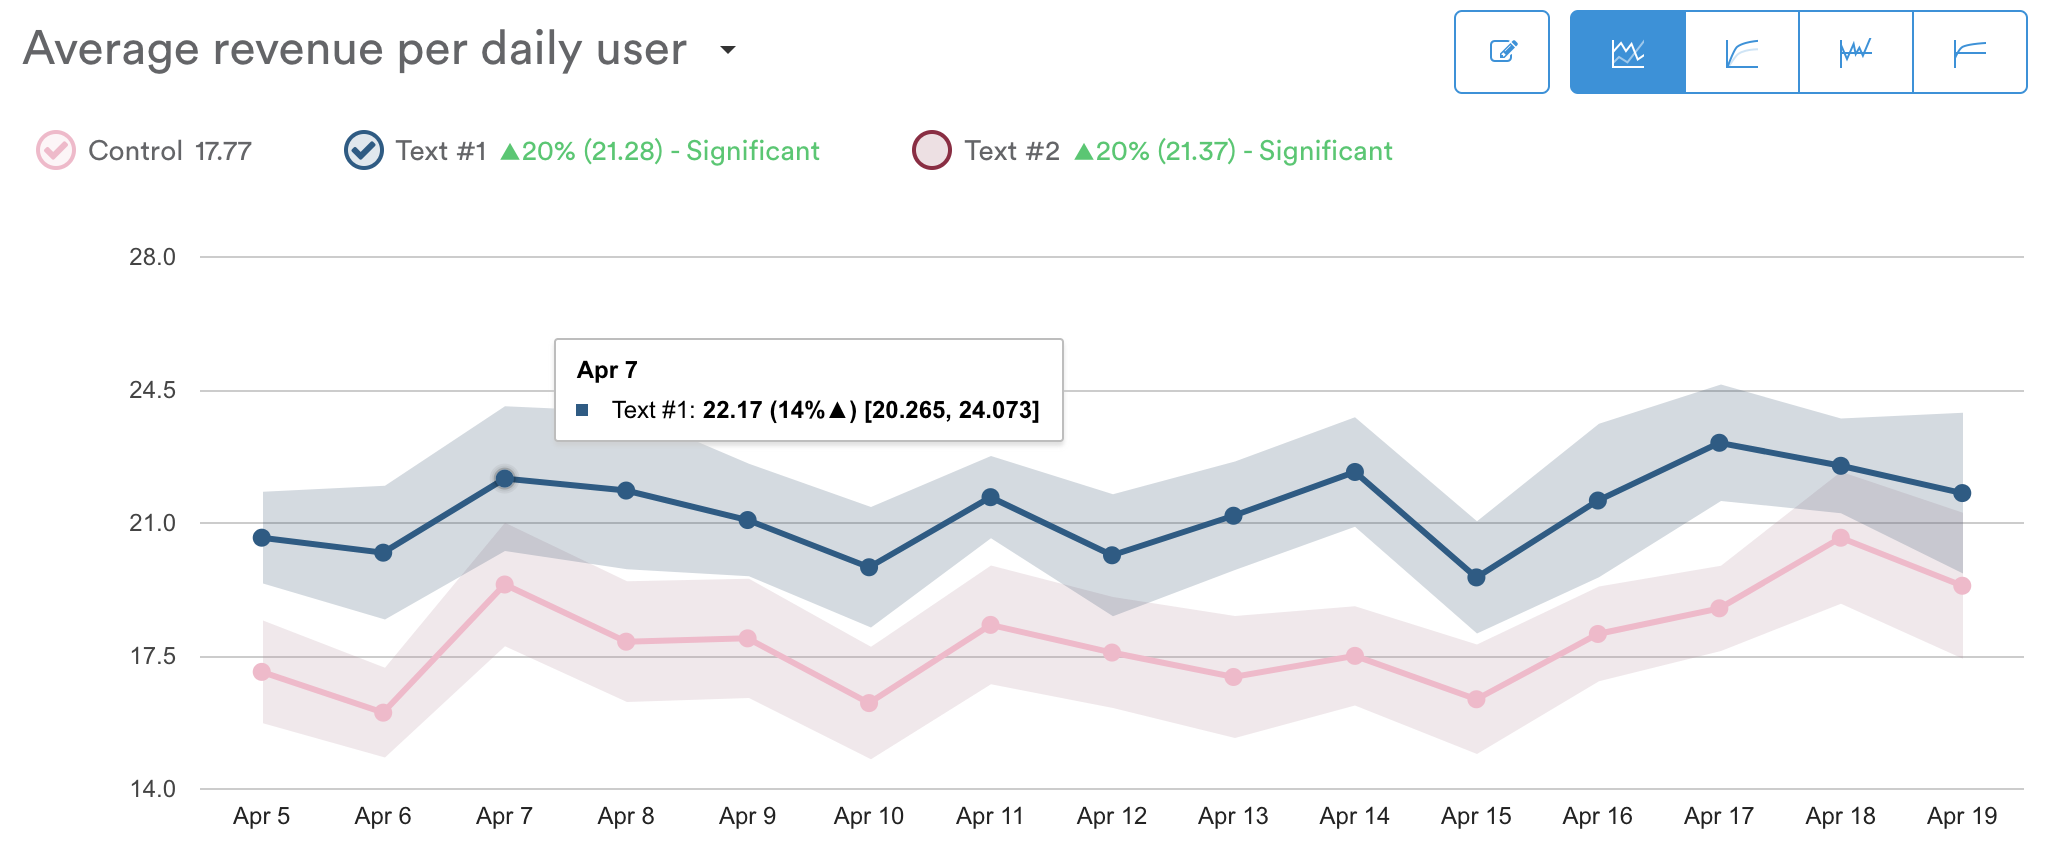 """""""Average revenue per daily user"""" is the current selected metric from the dropdown."""